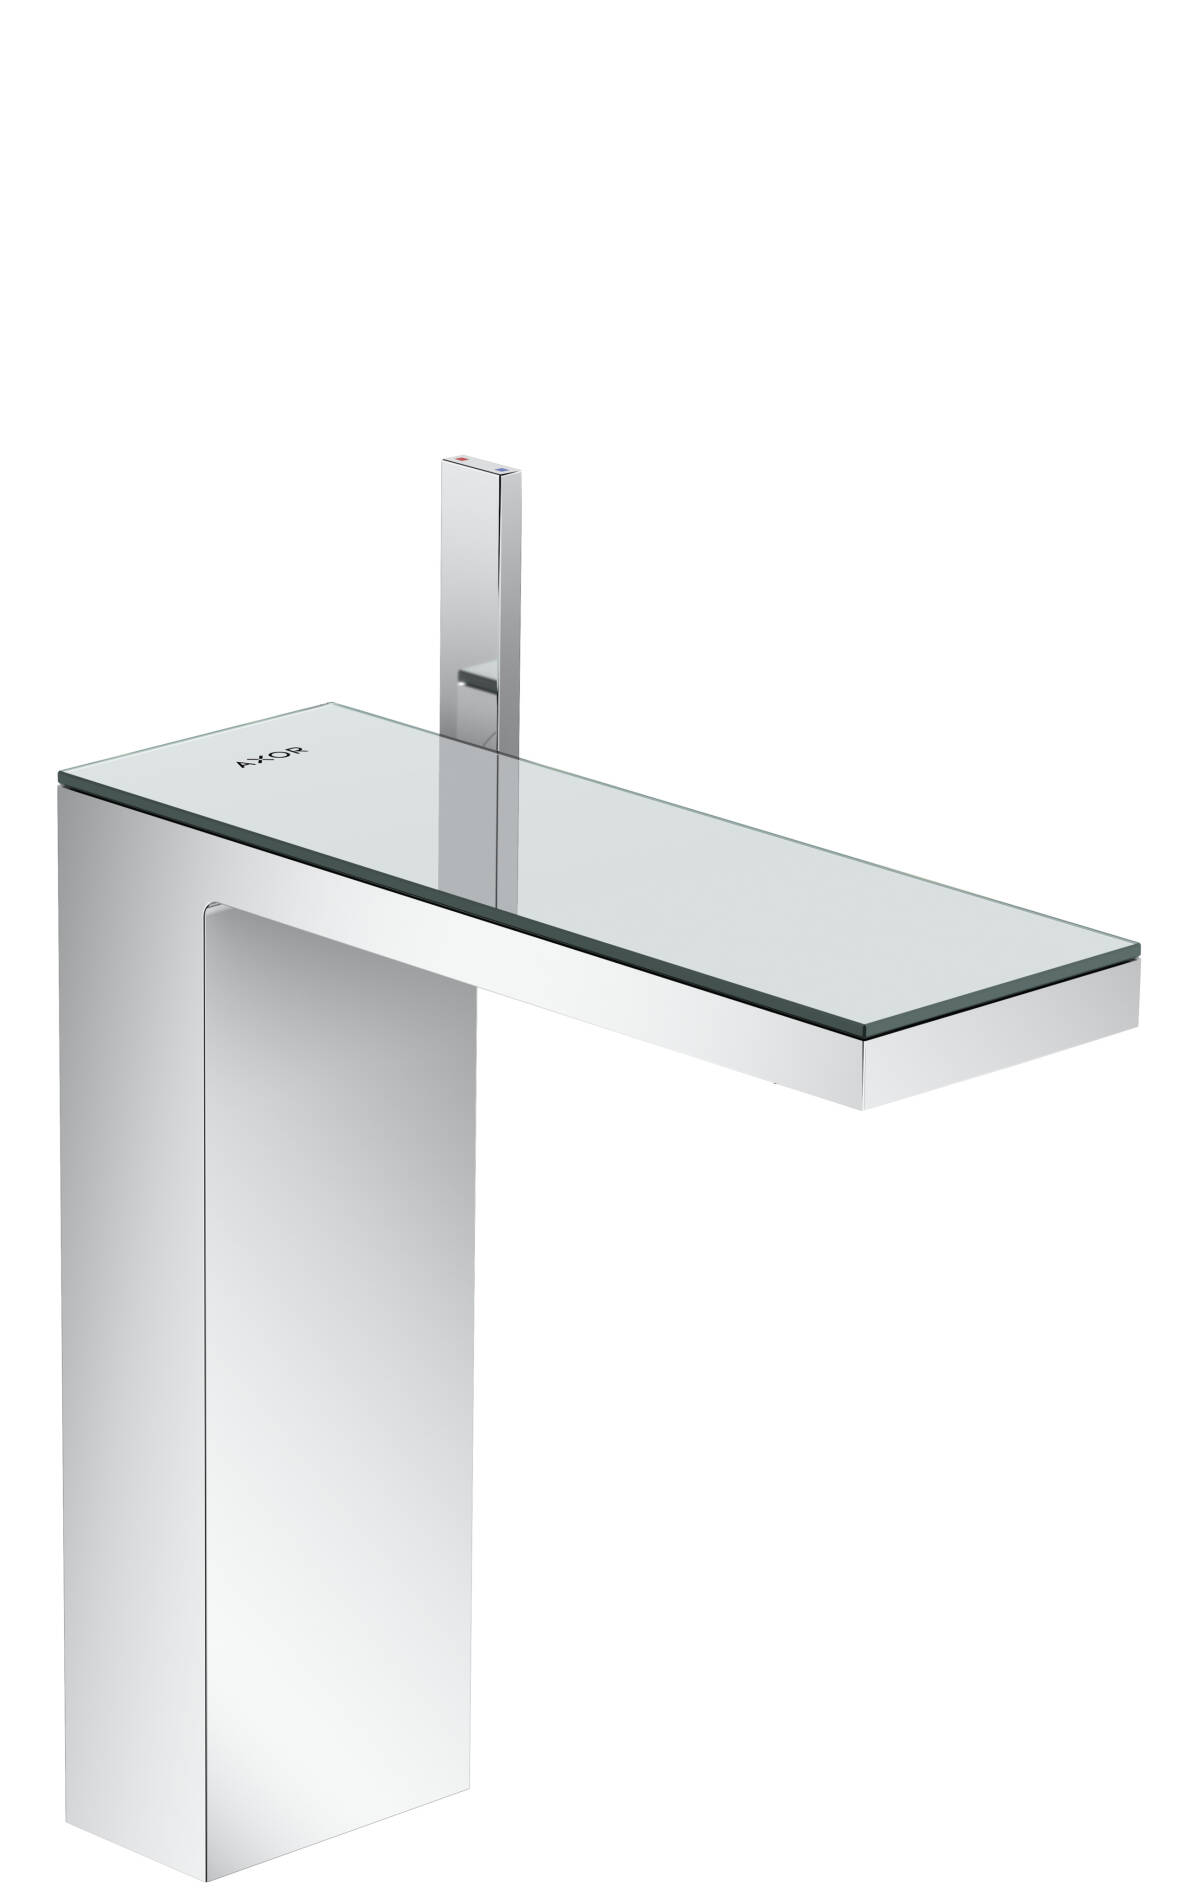 Single lever basin mixer 230 with push-open waste set, Chrome/Mirror Glass, 47020000